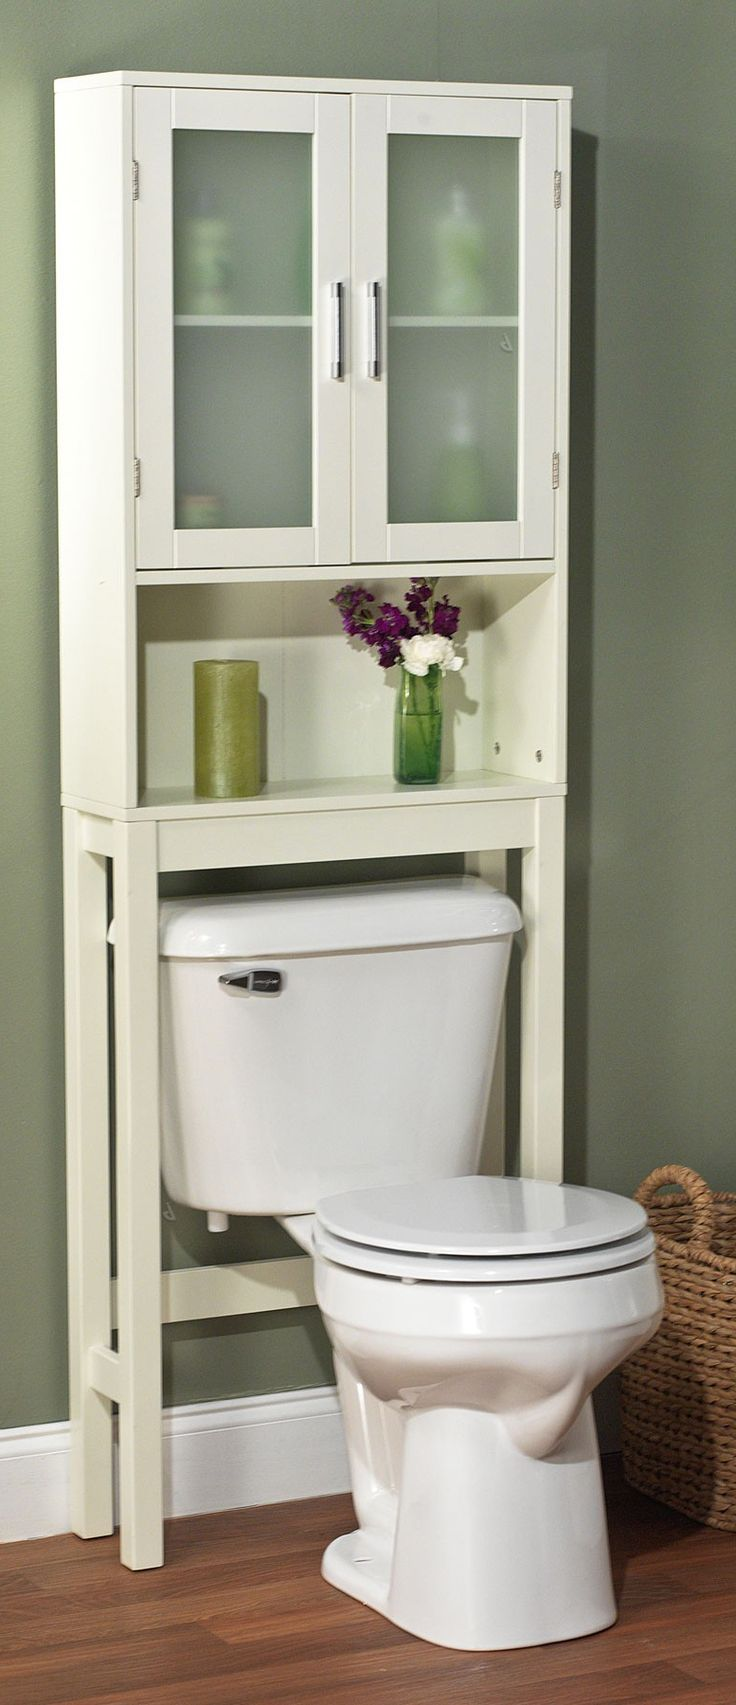 Bathroom Space Saver Over Toilet Cupboard Such A Good Idea For Small Spaces Furniture